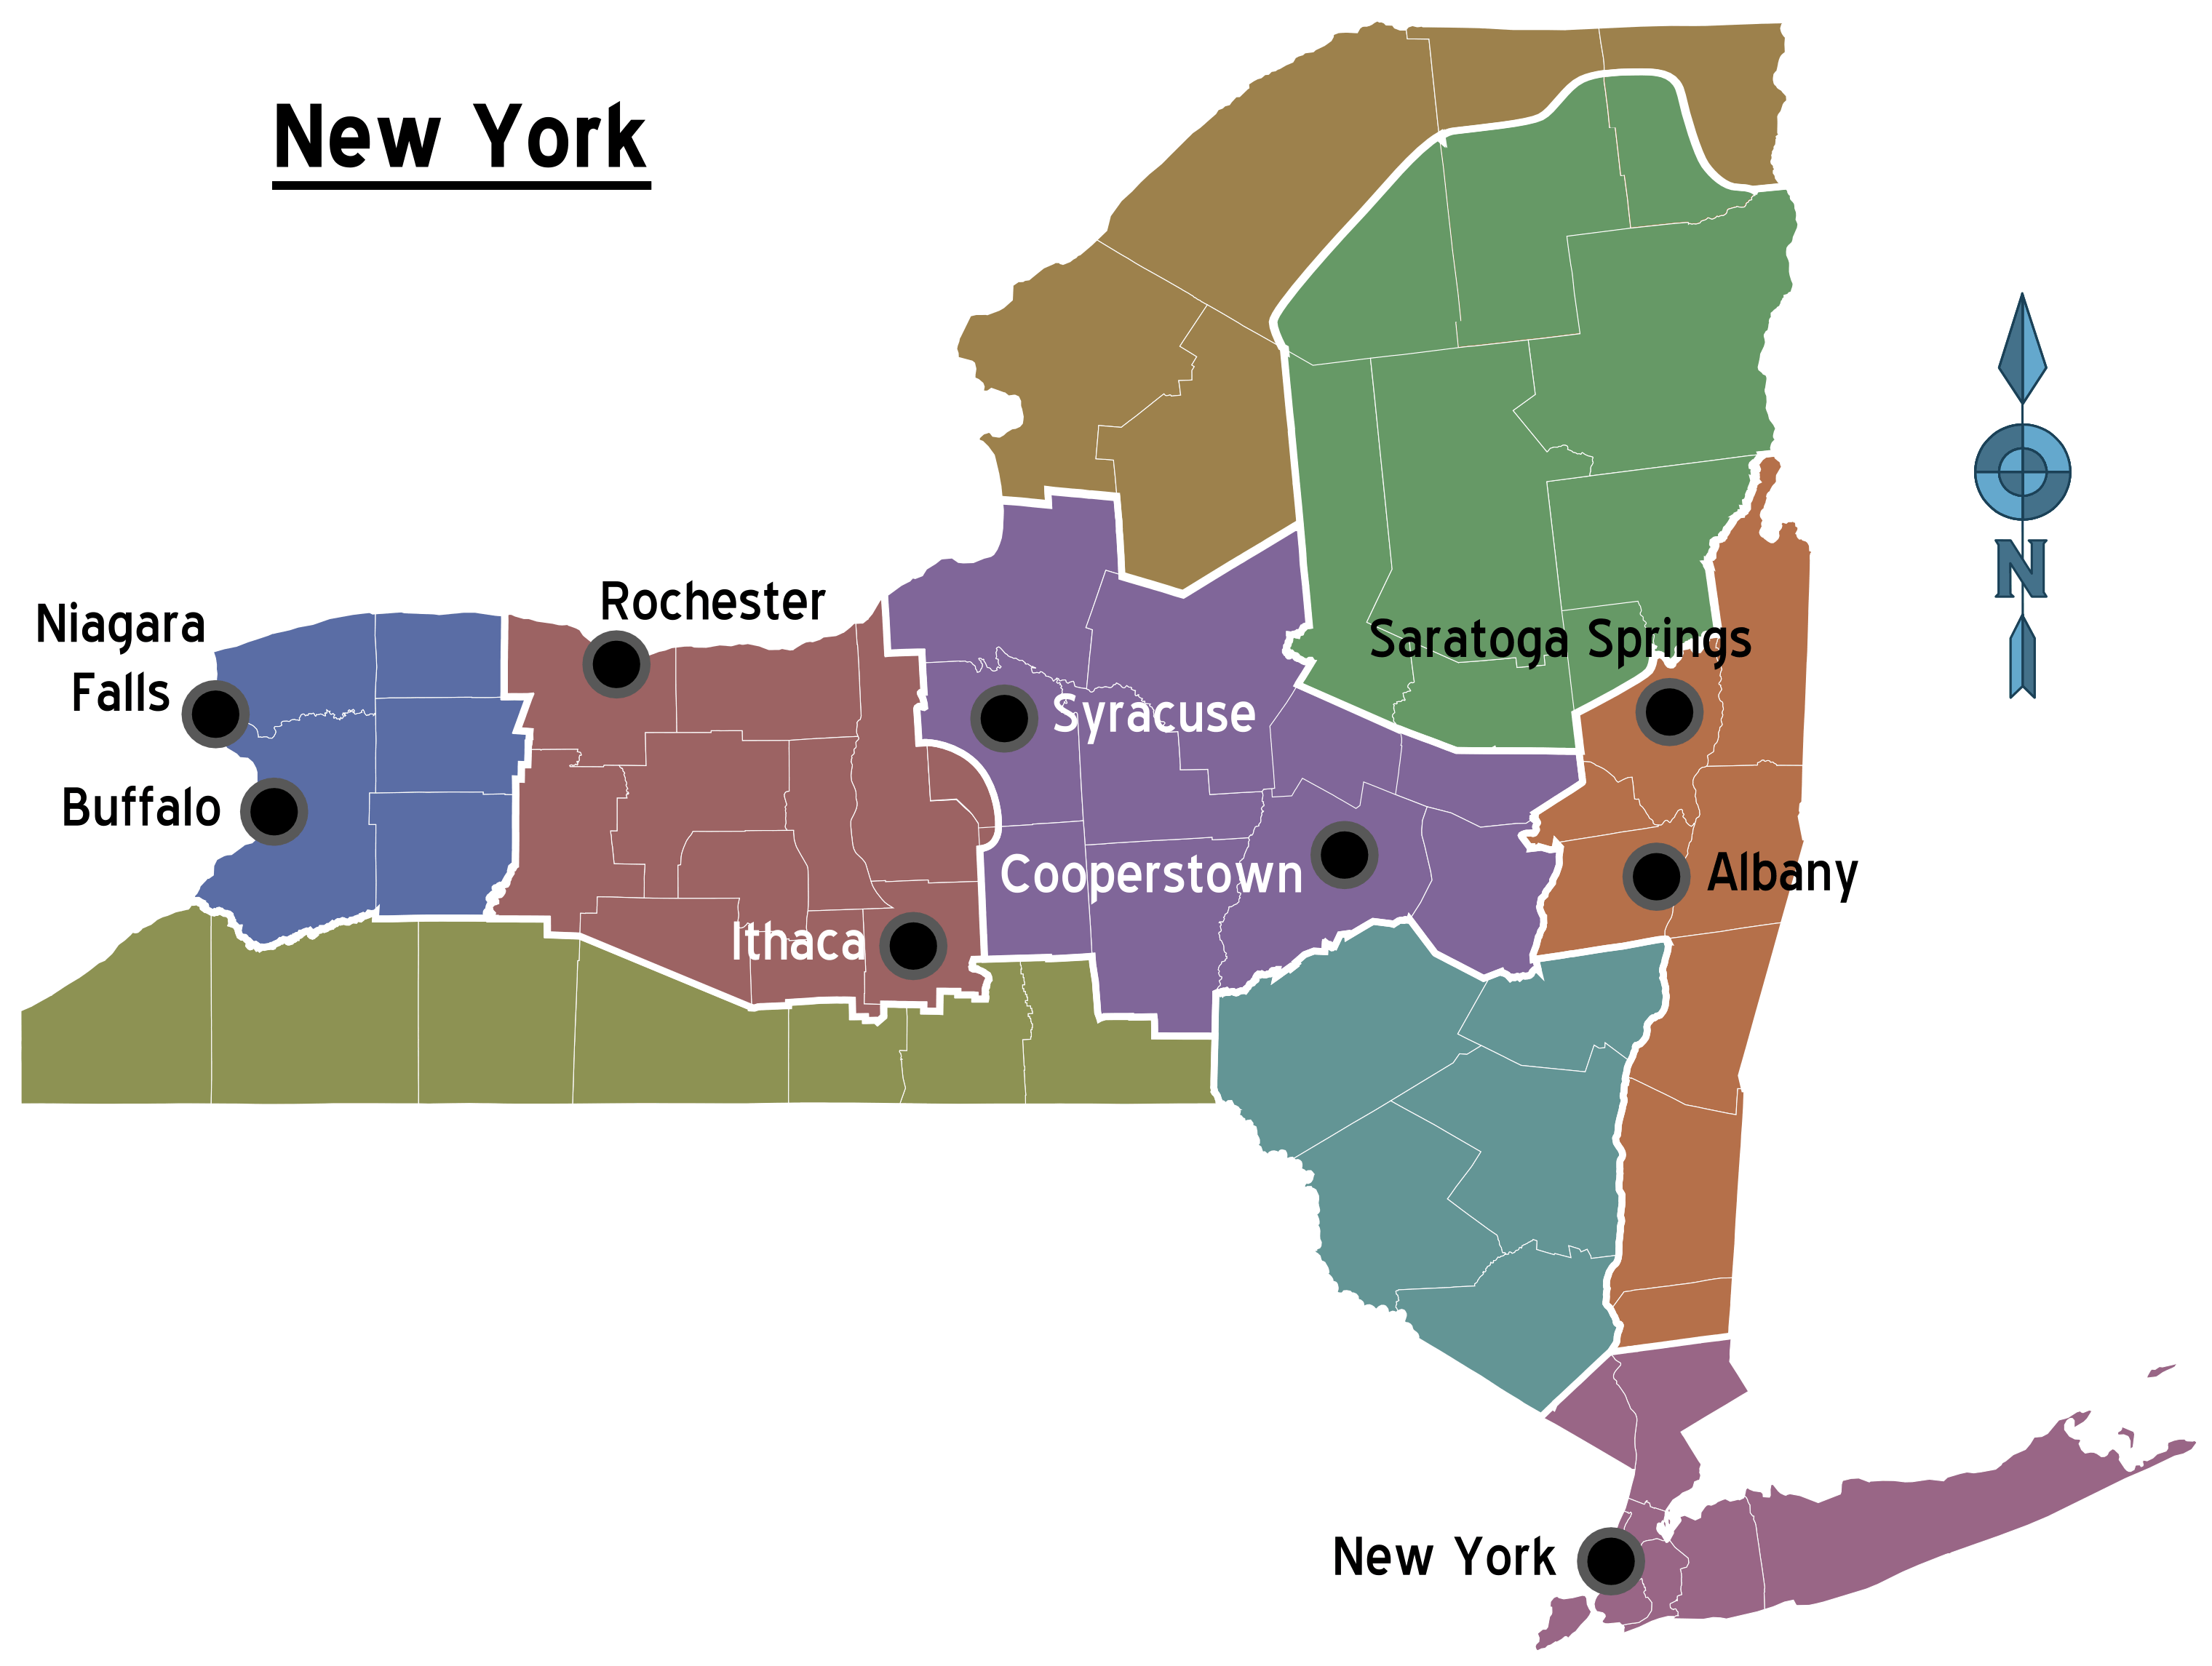 New York Regions Map